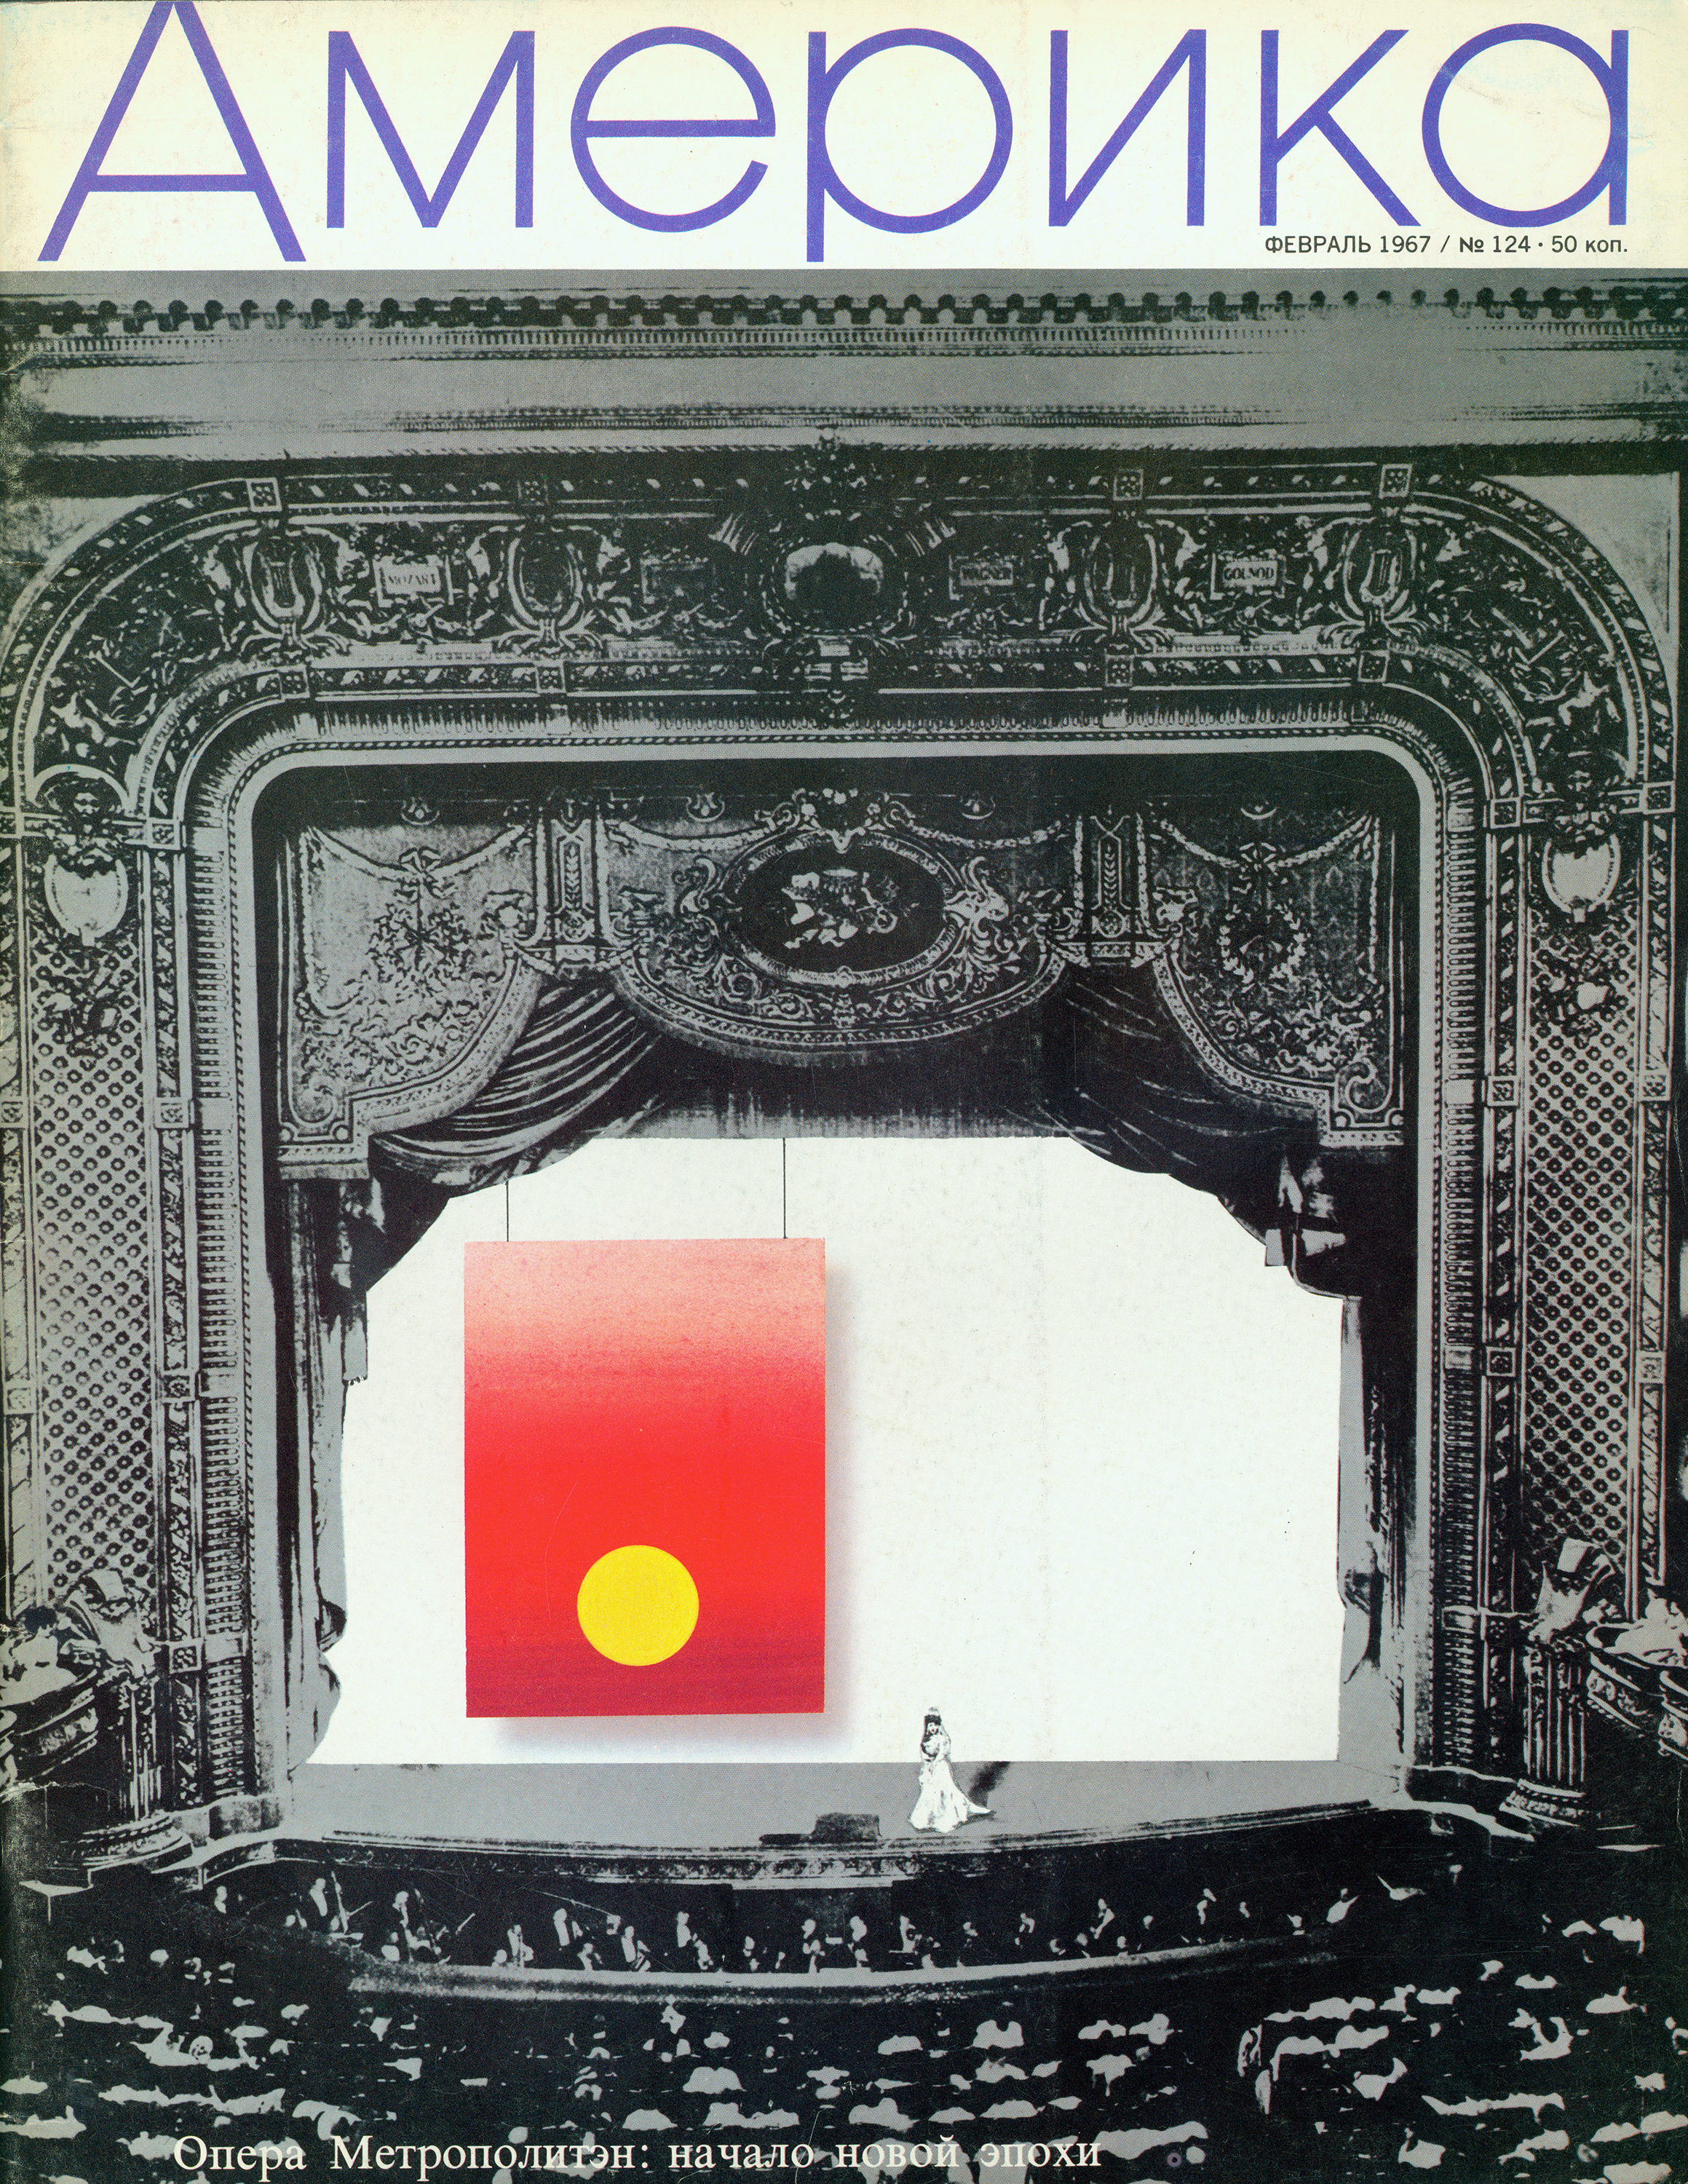 Black and white photograph of a stage and proscenium, with a graphic hanging in the background of a yellow sun on a red gradient background.